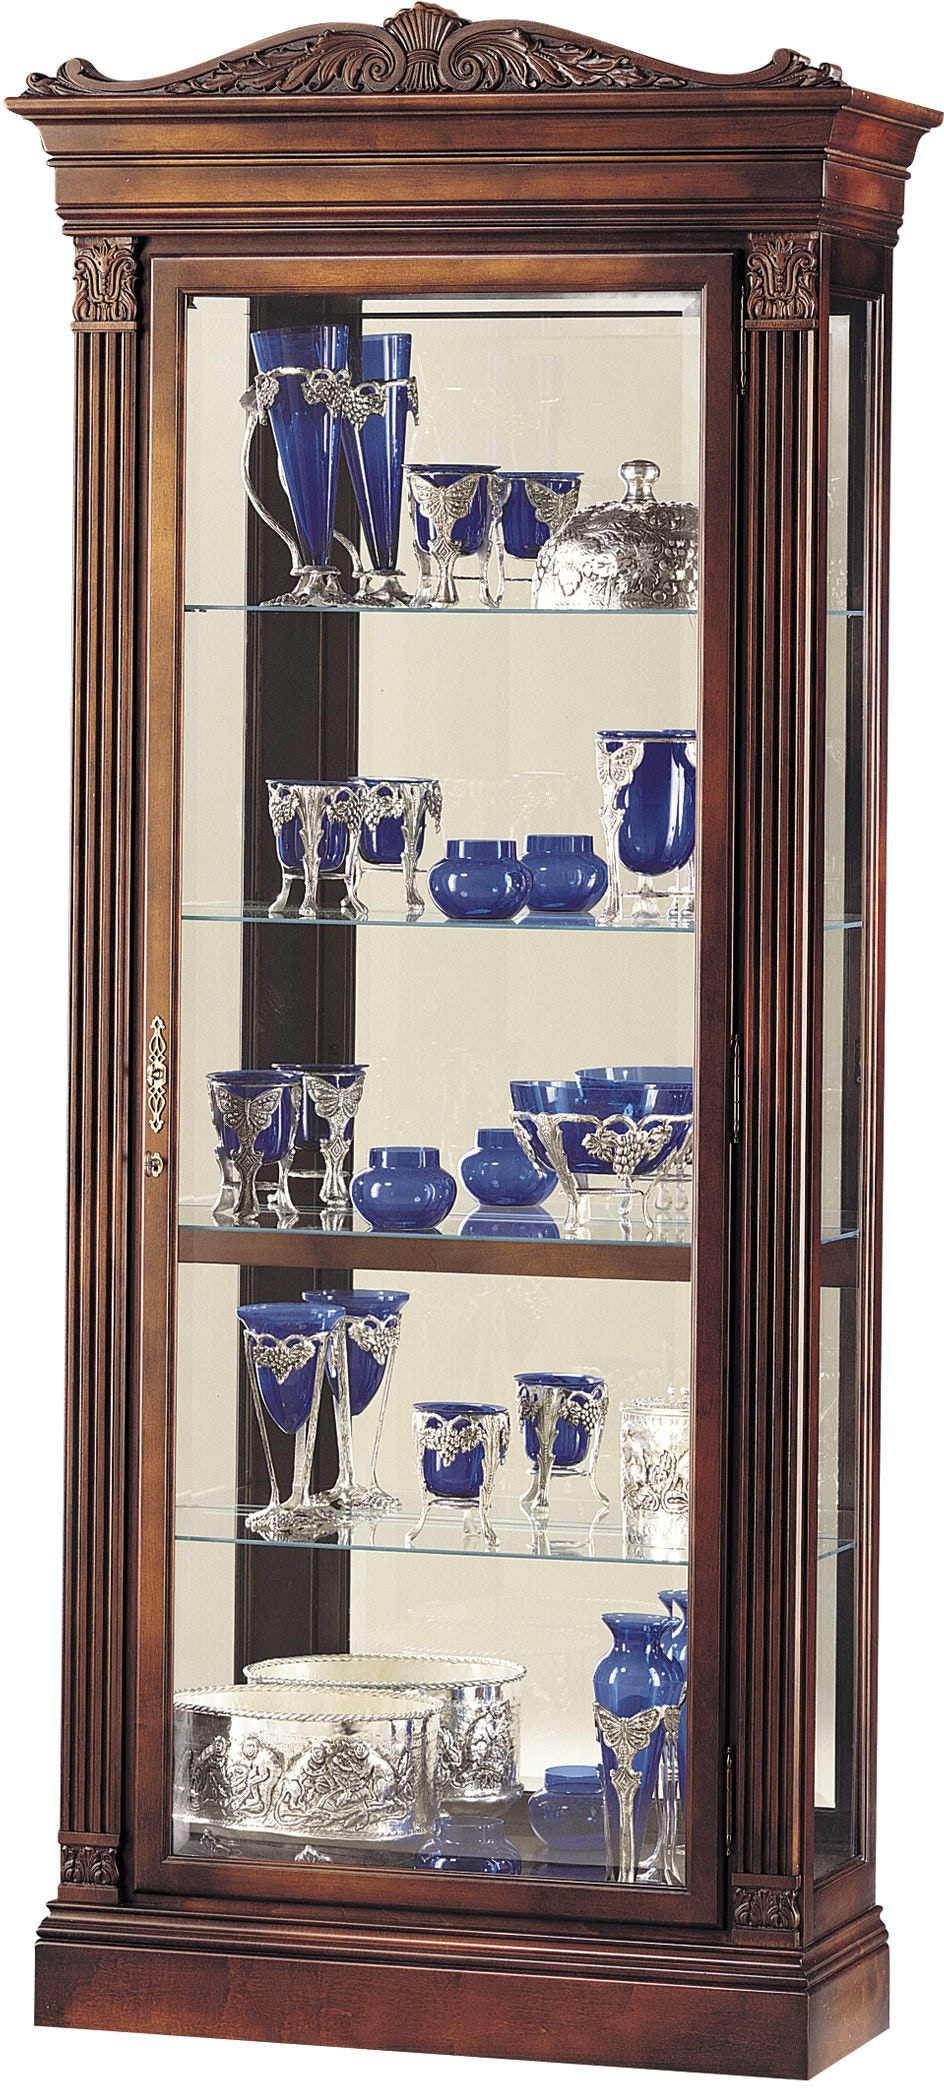 living room curio cabinets howard miller living room embassy curio cabinet 680243 13782